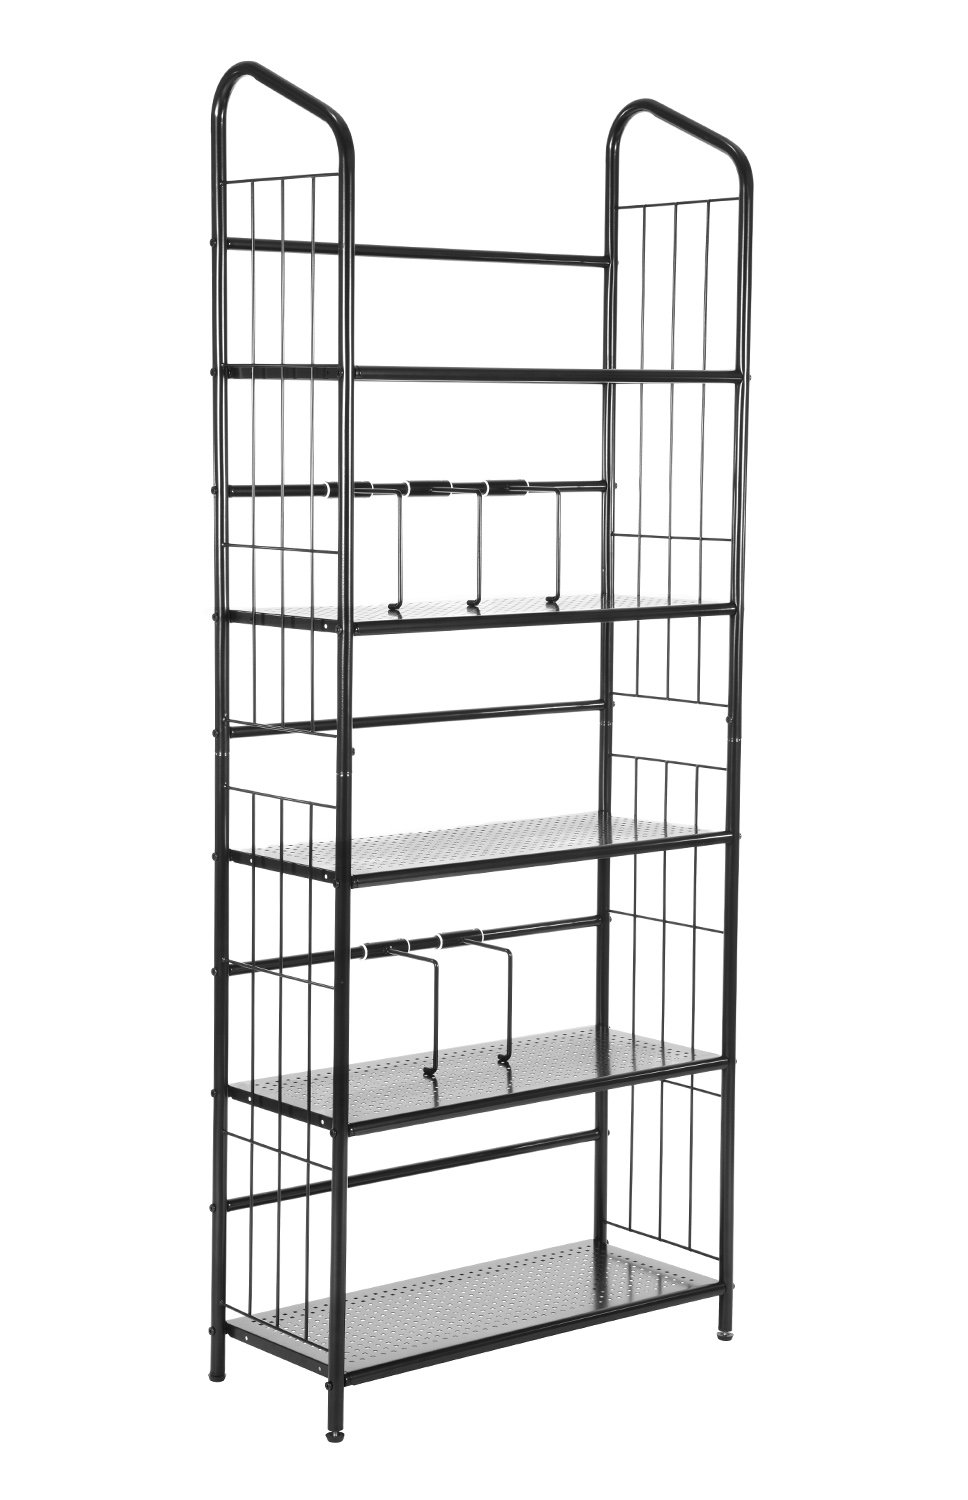 MaidMAX Metal Bookshelf 5 Tiers Bookcase Shelving Unit Storage Book Rack for Kids to Hold Albums Photo Frames in Bedroom Living Room Study Room School and Office, Black